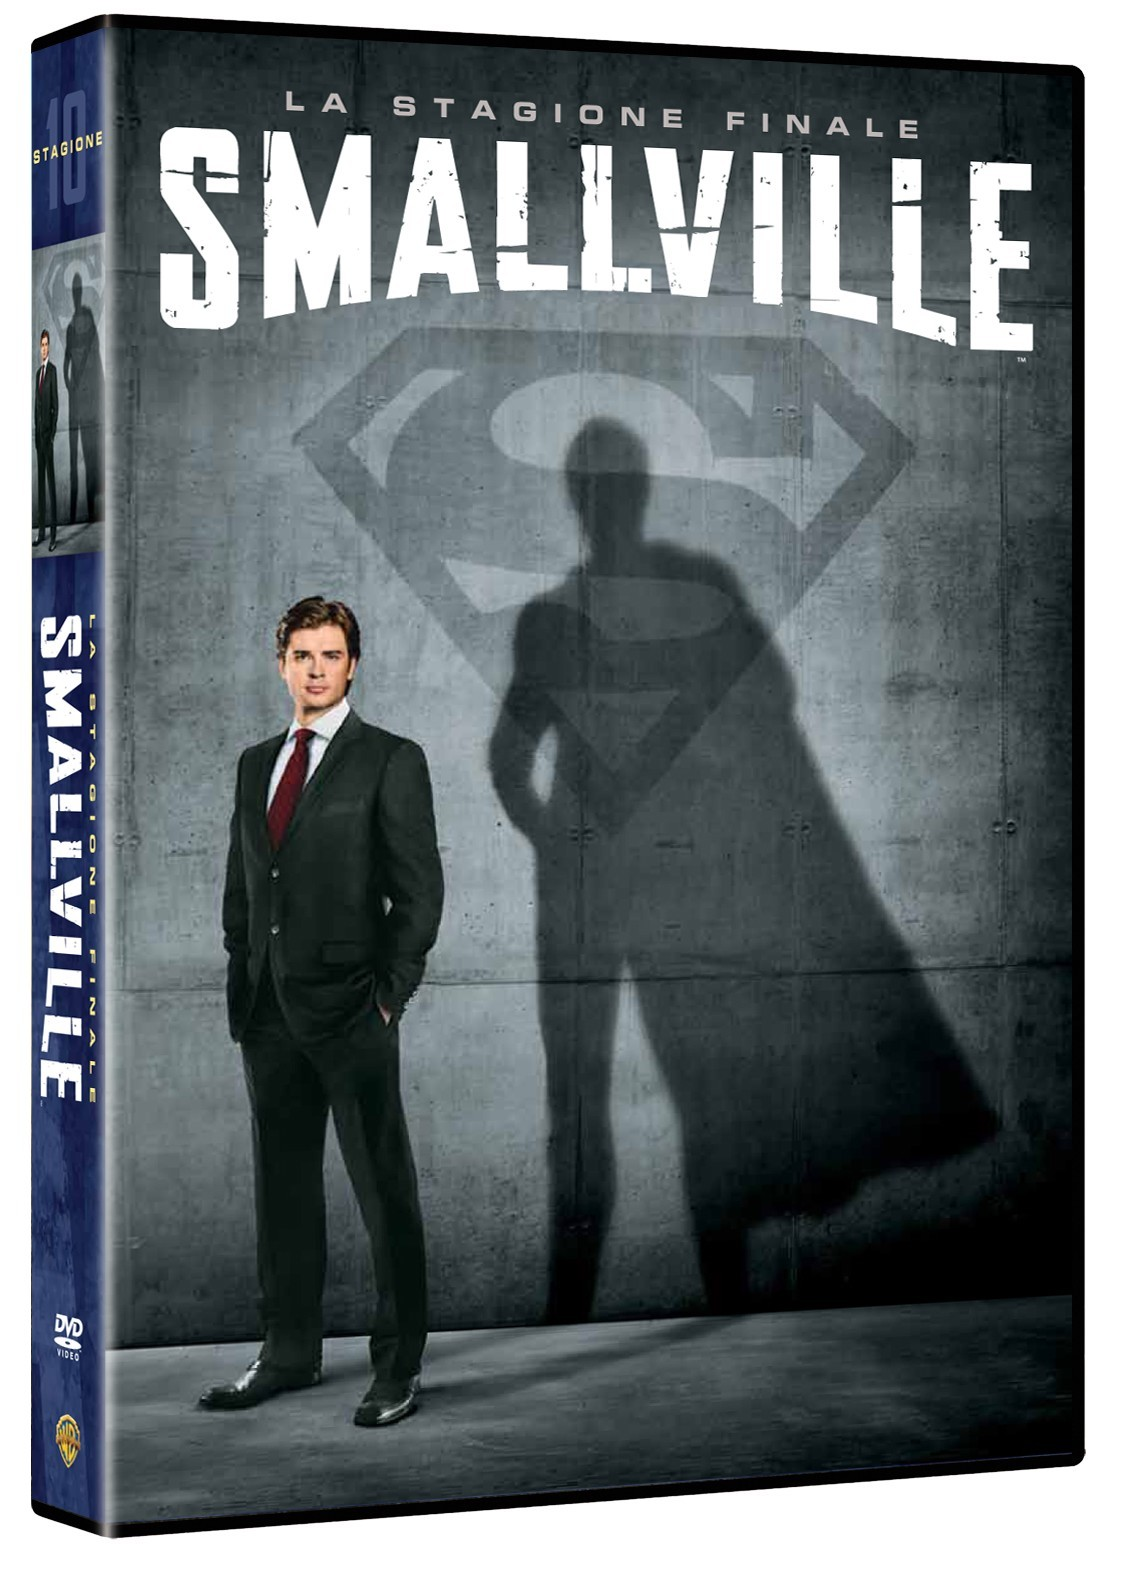 smallvillestagione 10